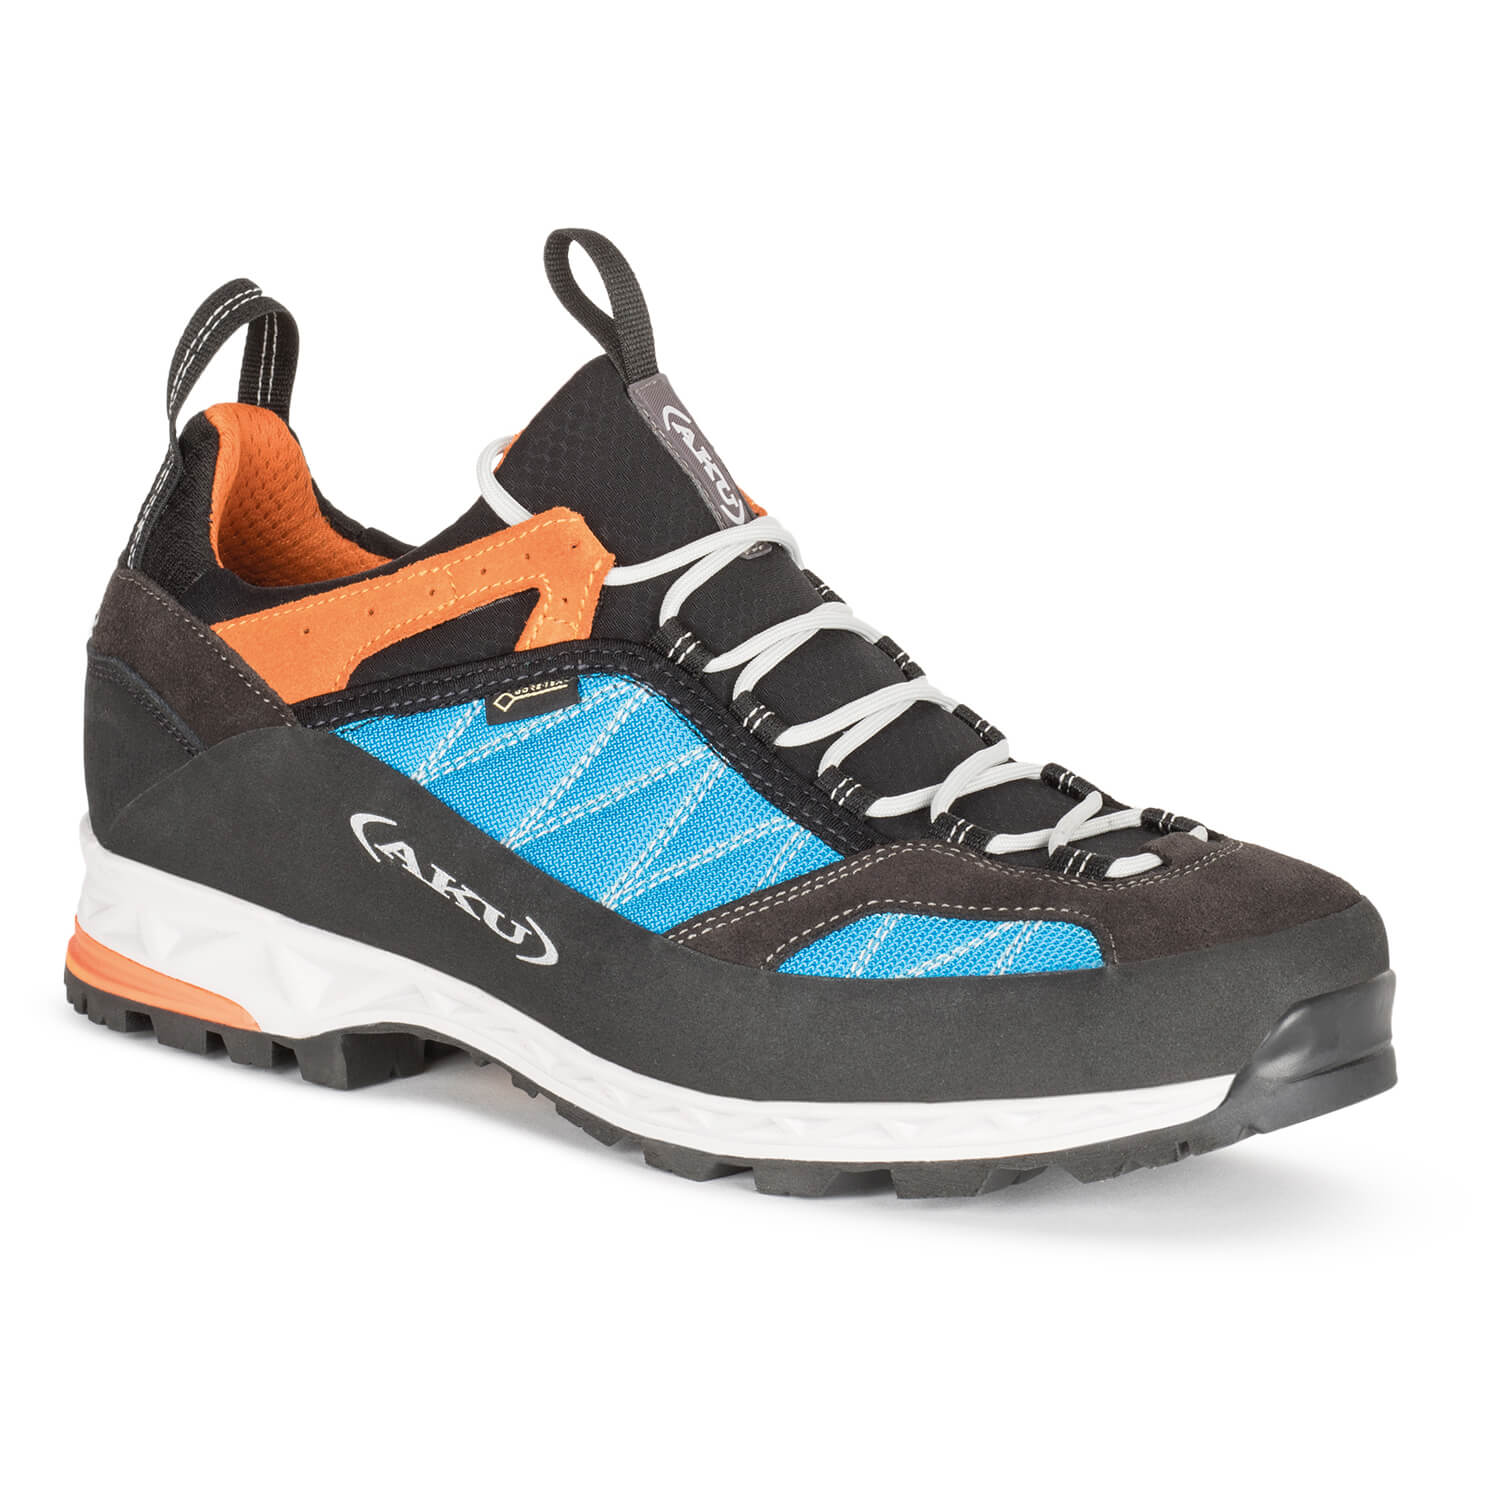 AKU - Tengu Low GTX - Multisportschuhe Turquoise / Orange